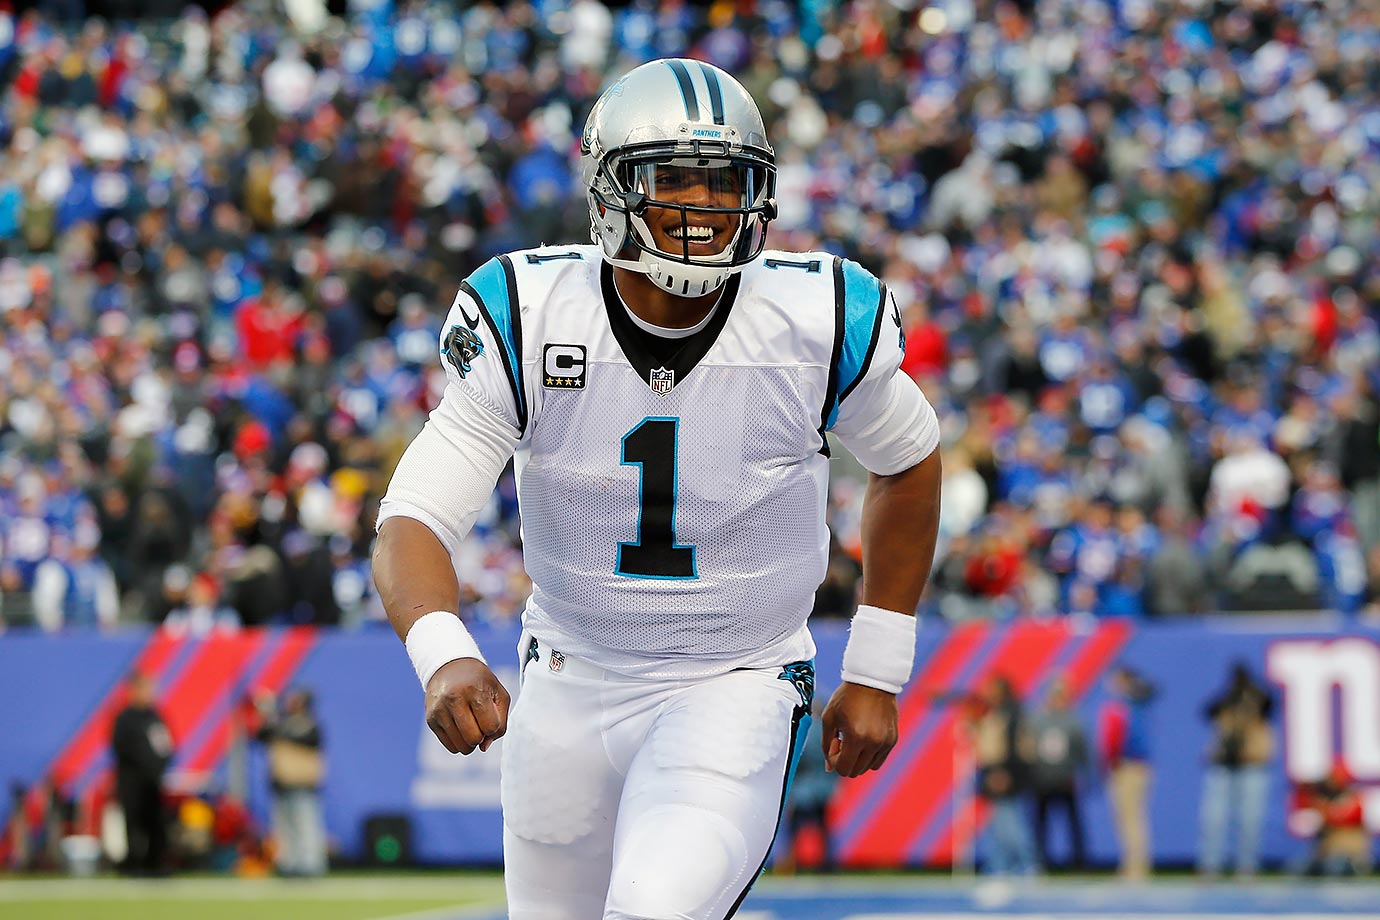 The Panthers and quarterback Cam Newton won their first 14 games of the 2015 season, doubling a franchise record set when the 1996 Panthers, in just their second season, won their last seven to finish at 12-4 and atop the old NFC West with Kerry Collins under center.